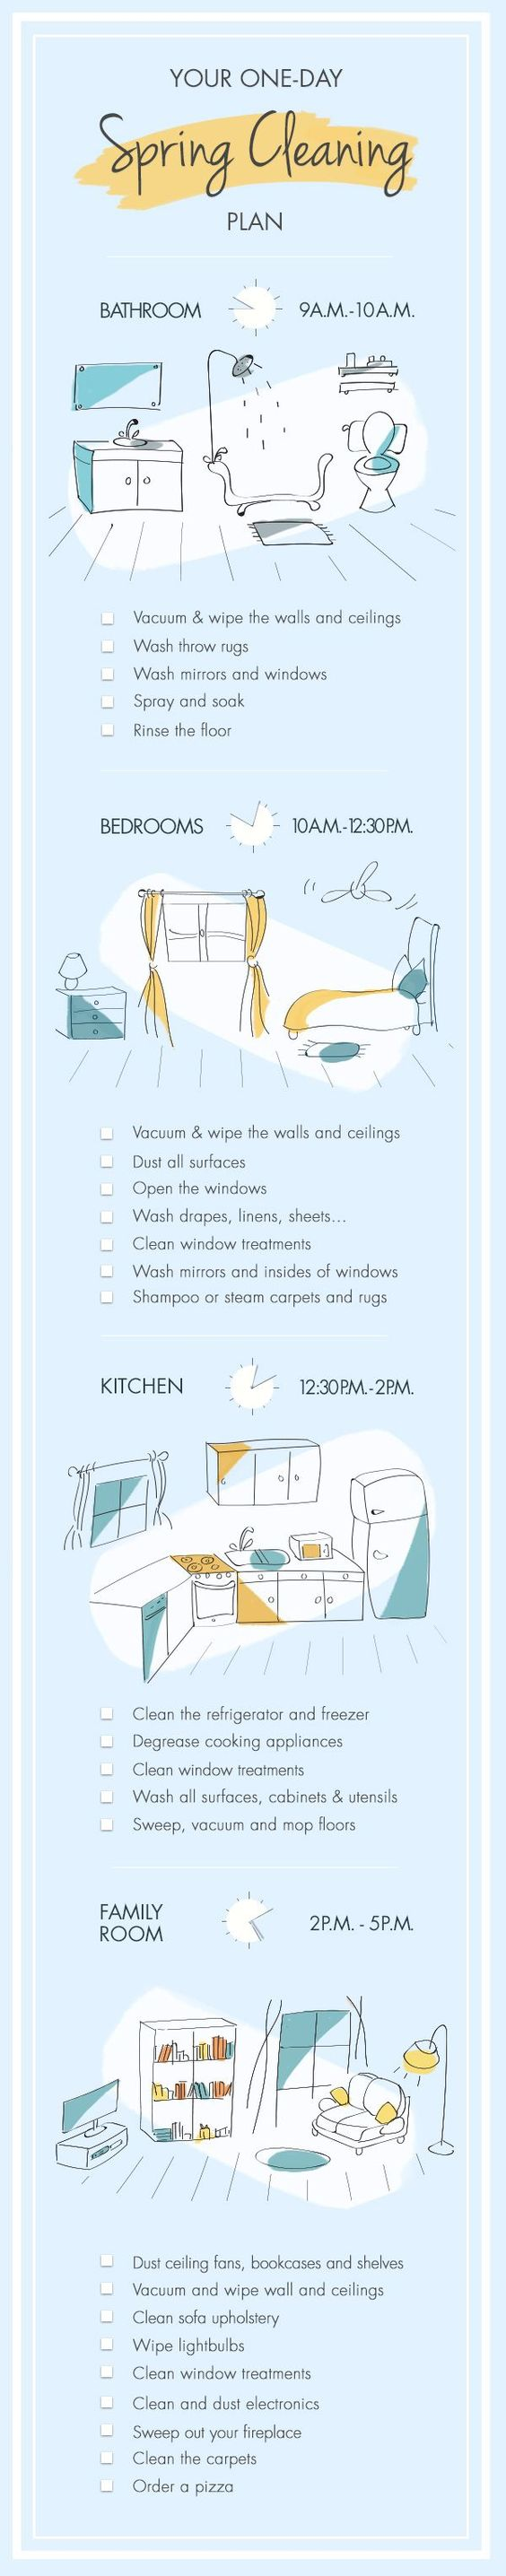 One Day Spring Cleaning Plan